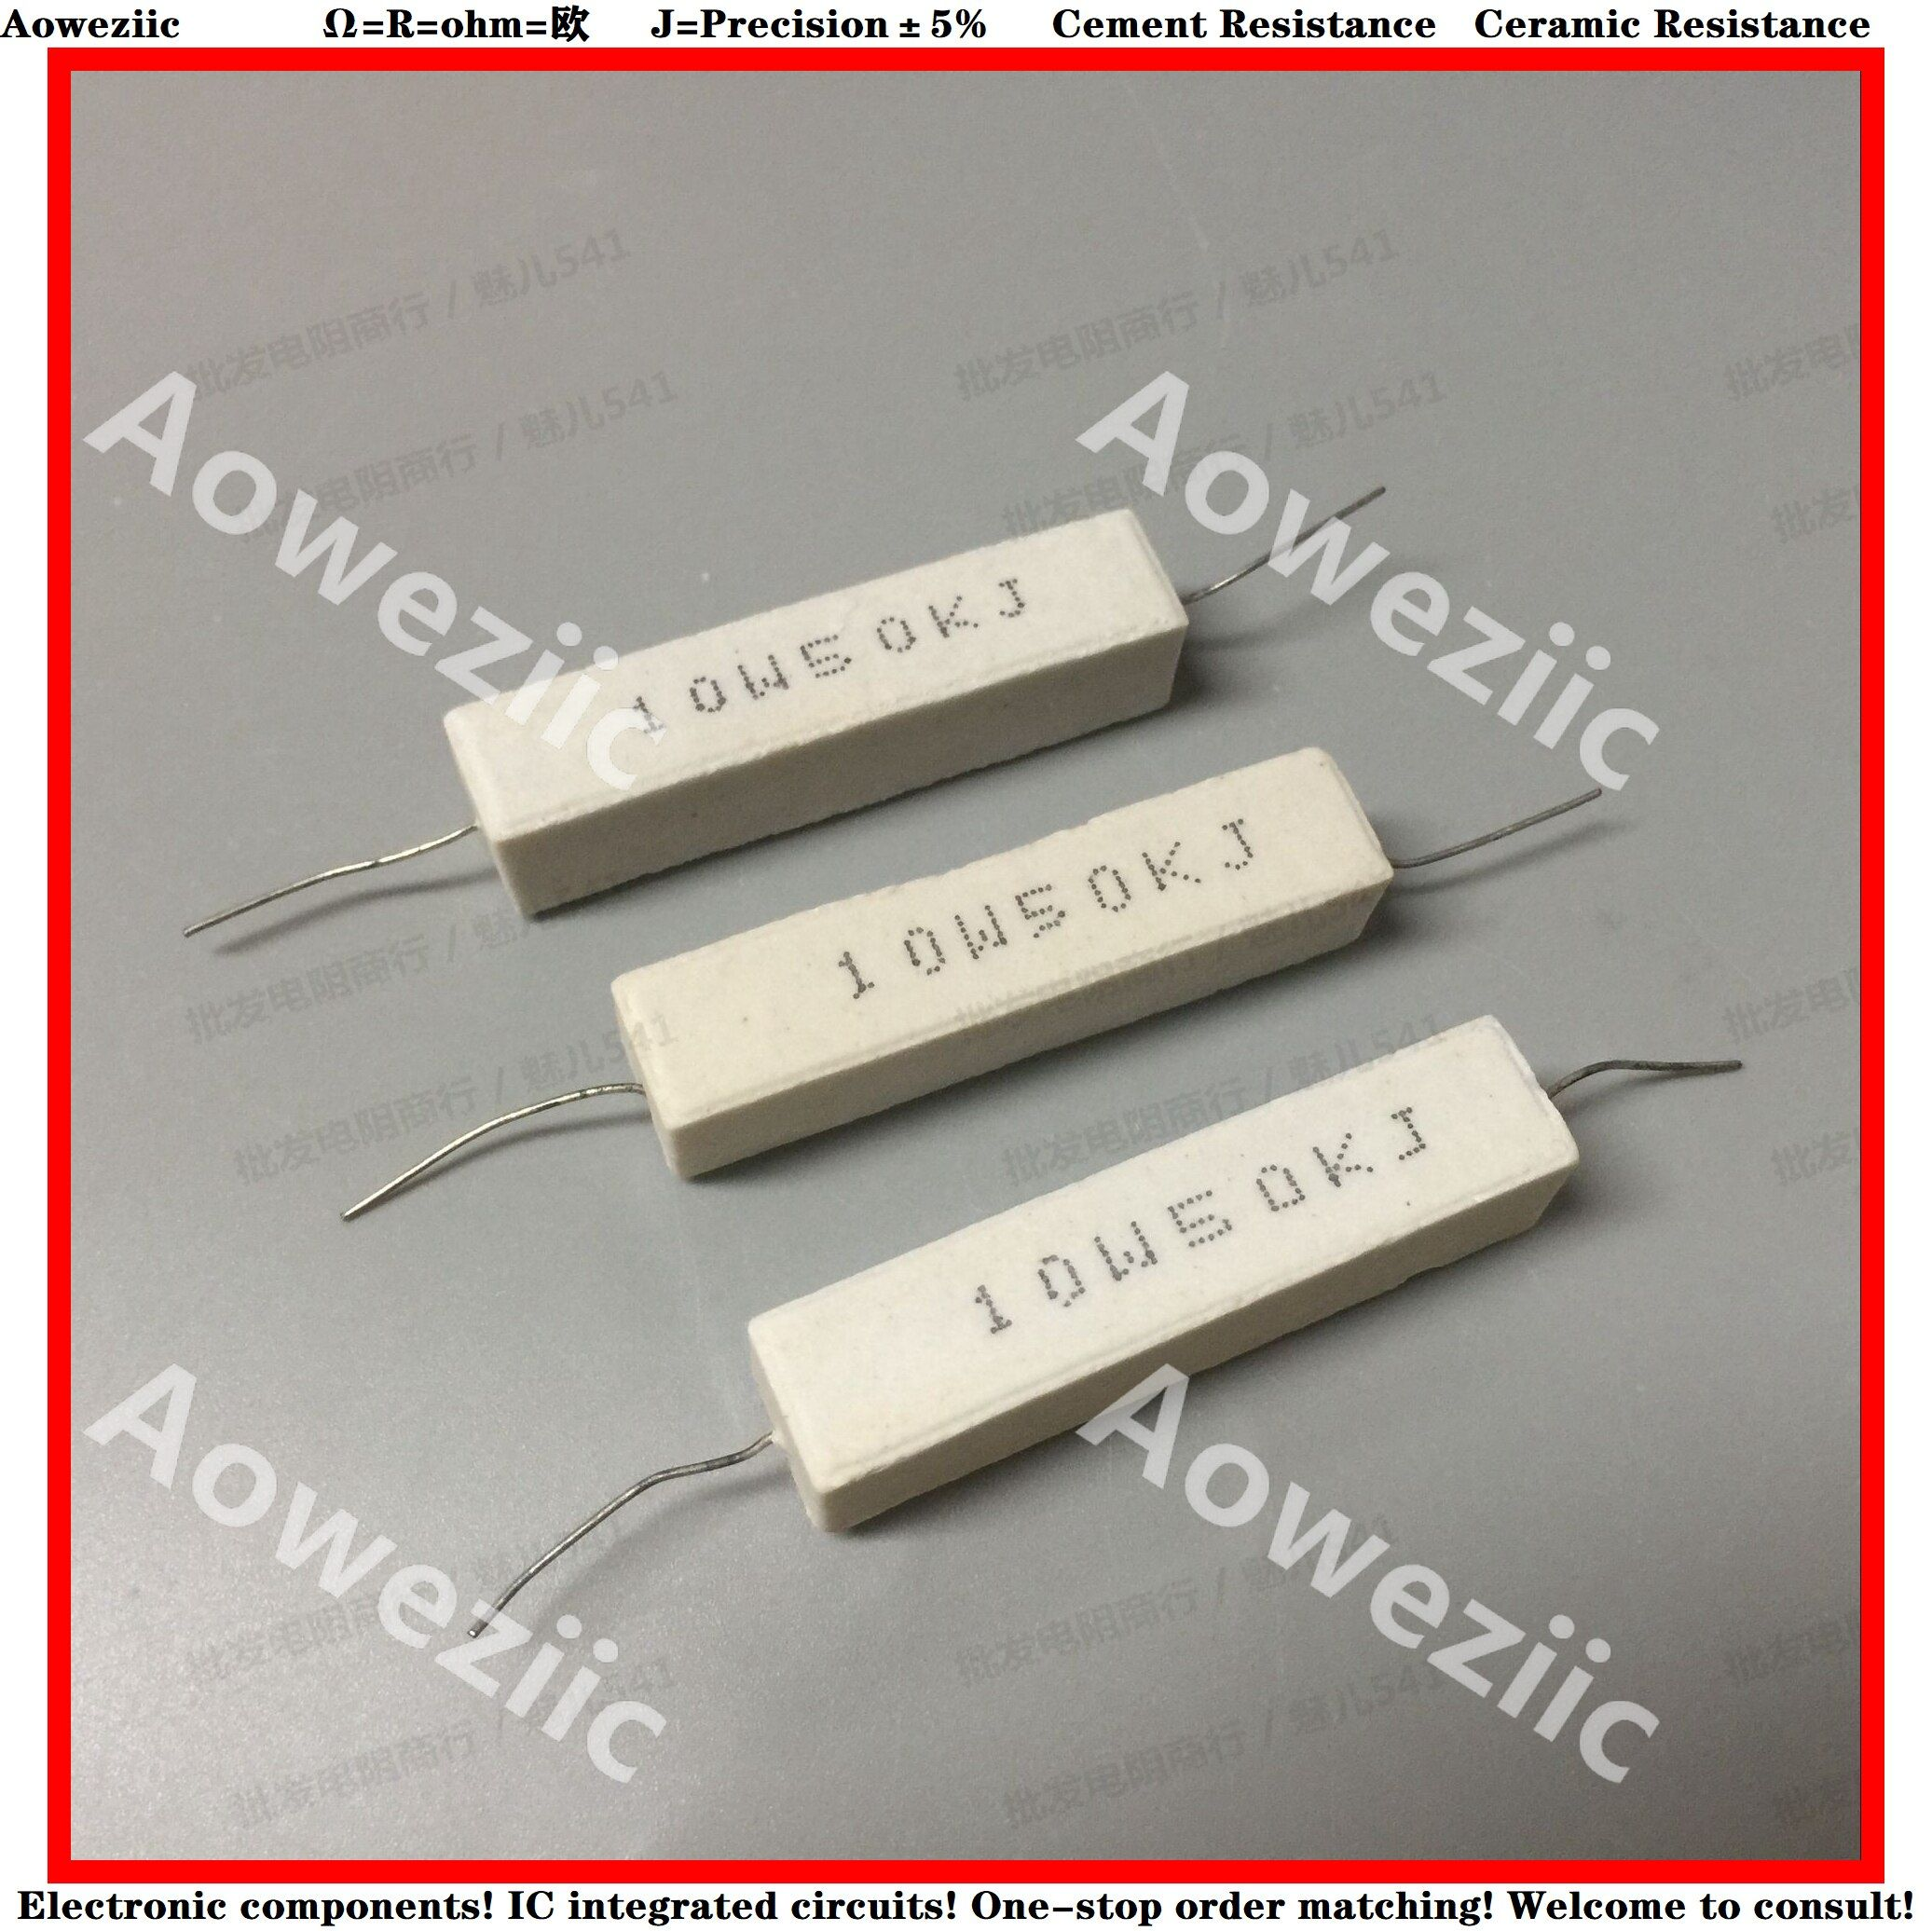 10pcs Rx27 Horizontal Cement Resistor 10w 50k Ohm 10w50kj 10w50k 50000 Ohm Ceramic Resistance Precision 5 Power Resistance Ohms Place Card Holders Resistors